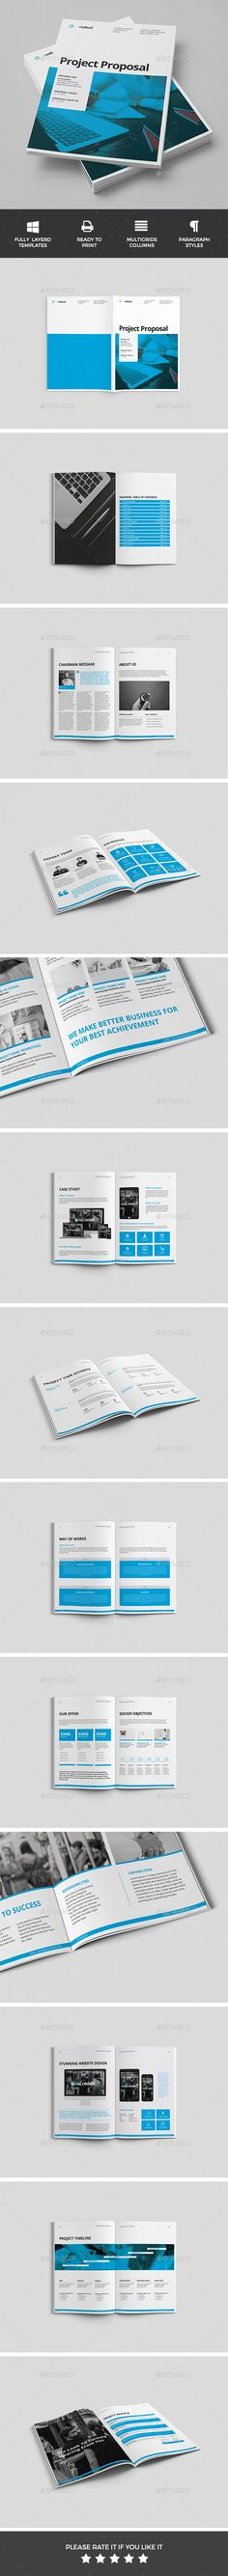 Clean Project Proposal Template InDesign INDD design